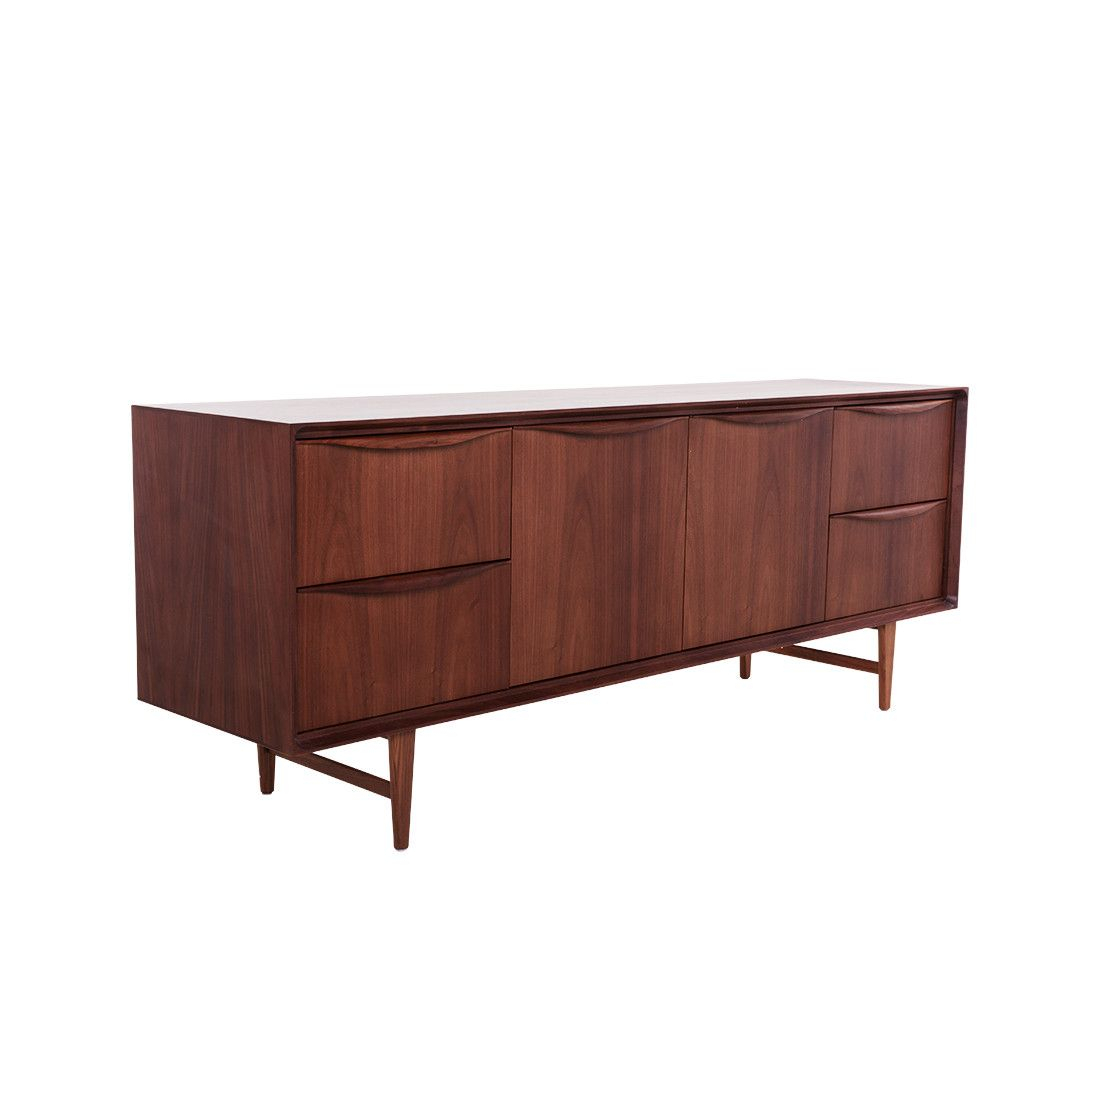 Mid Century Karon Credenza – Walnut | Credenzas, Buffets Intended For Stephen Credenzas (View 22 of 30)